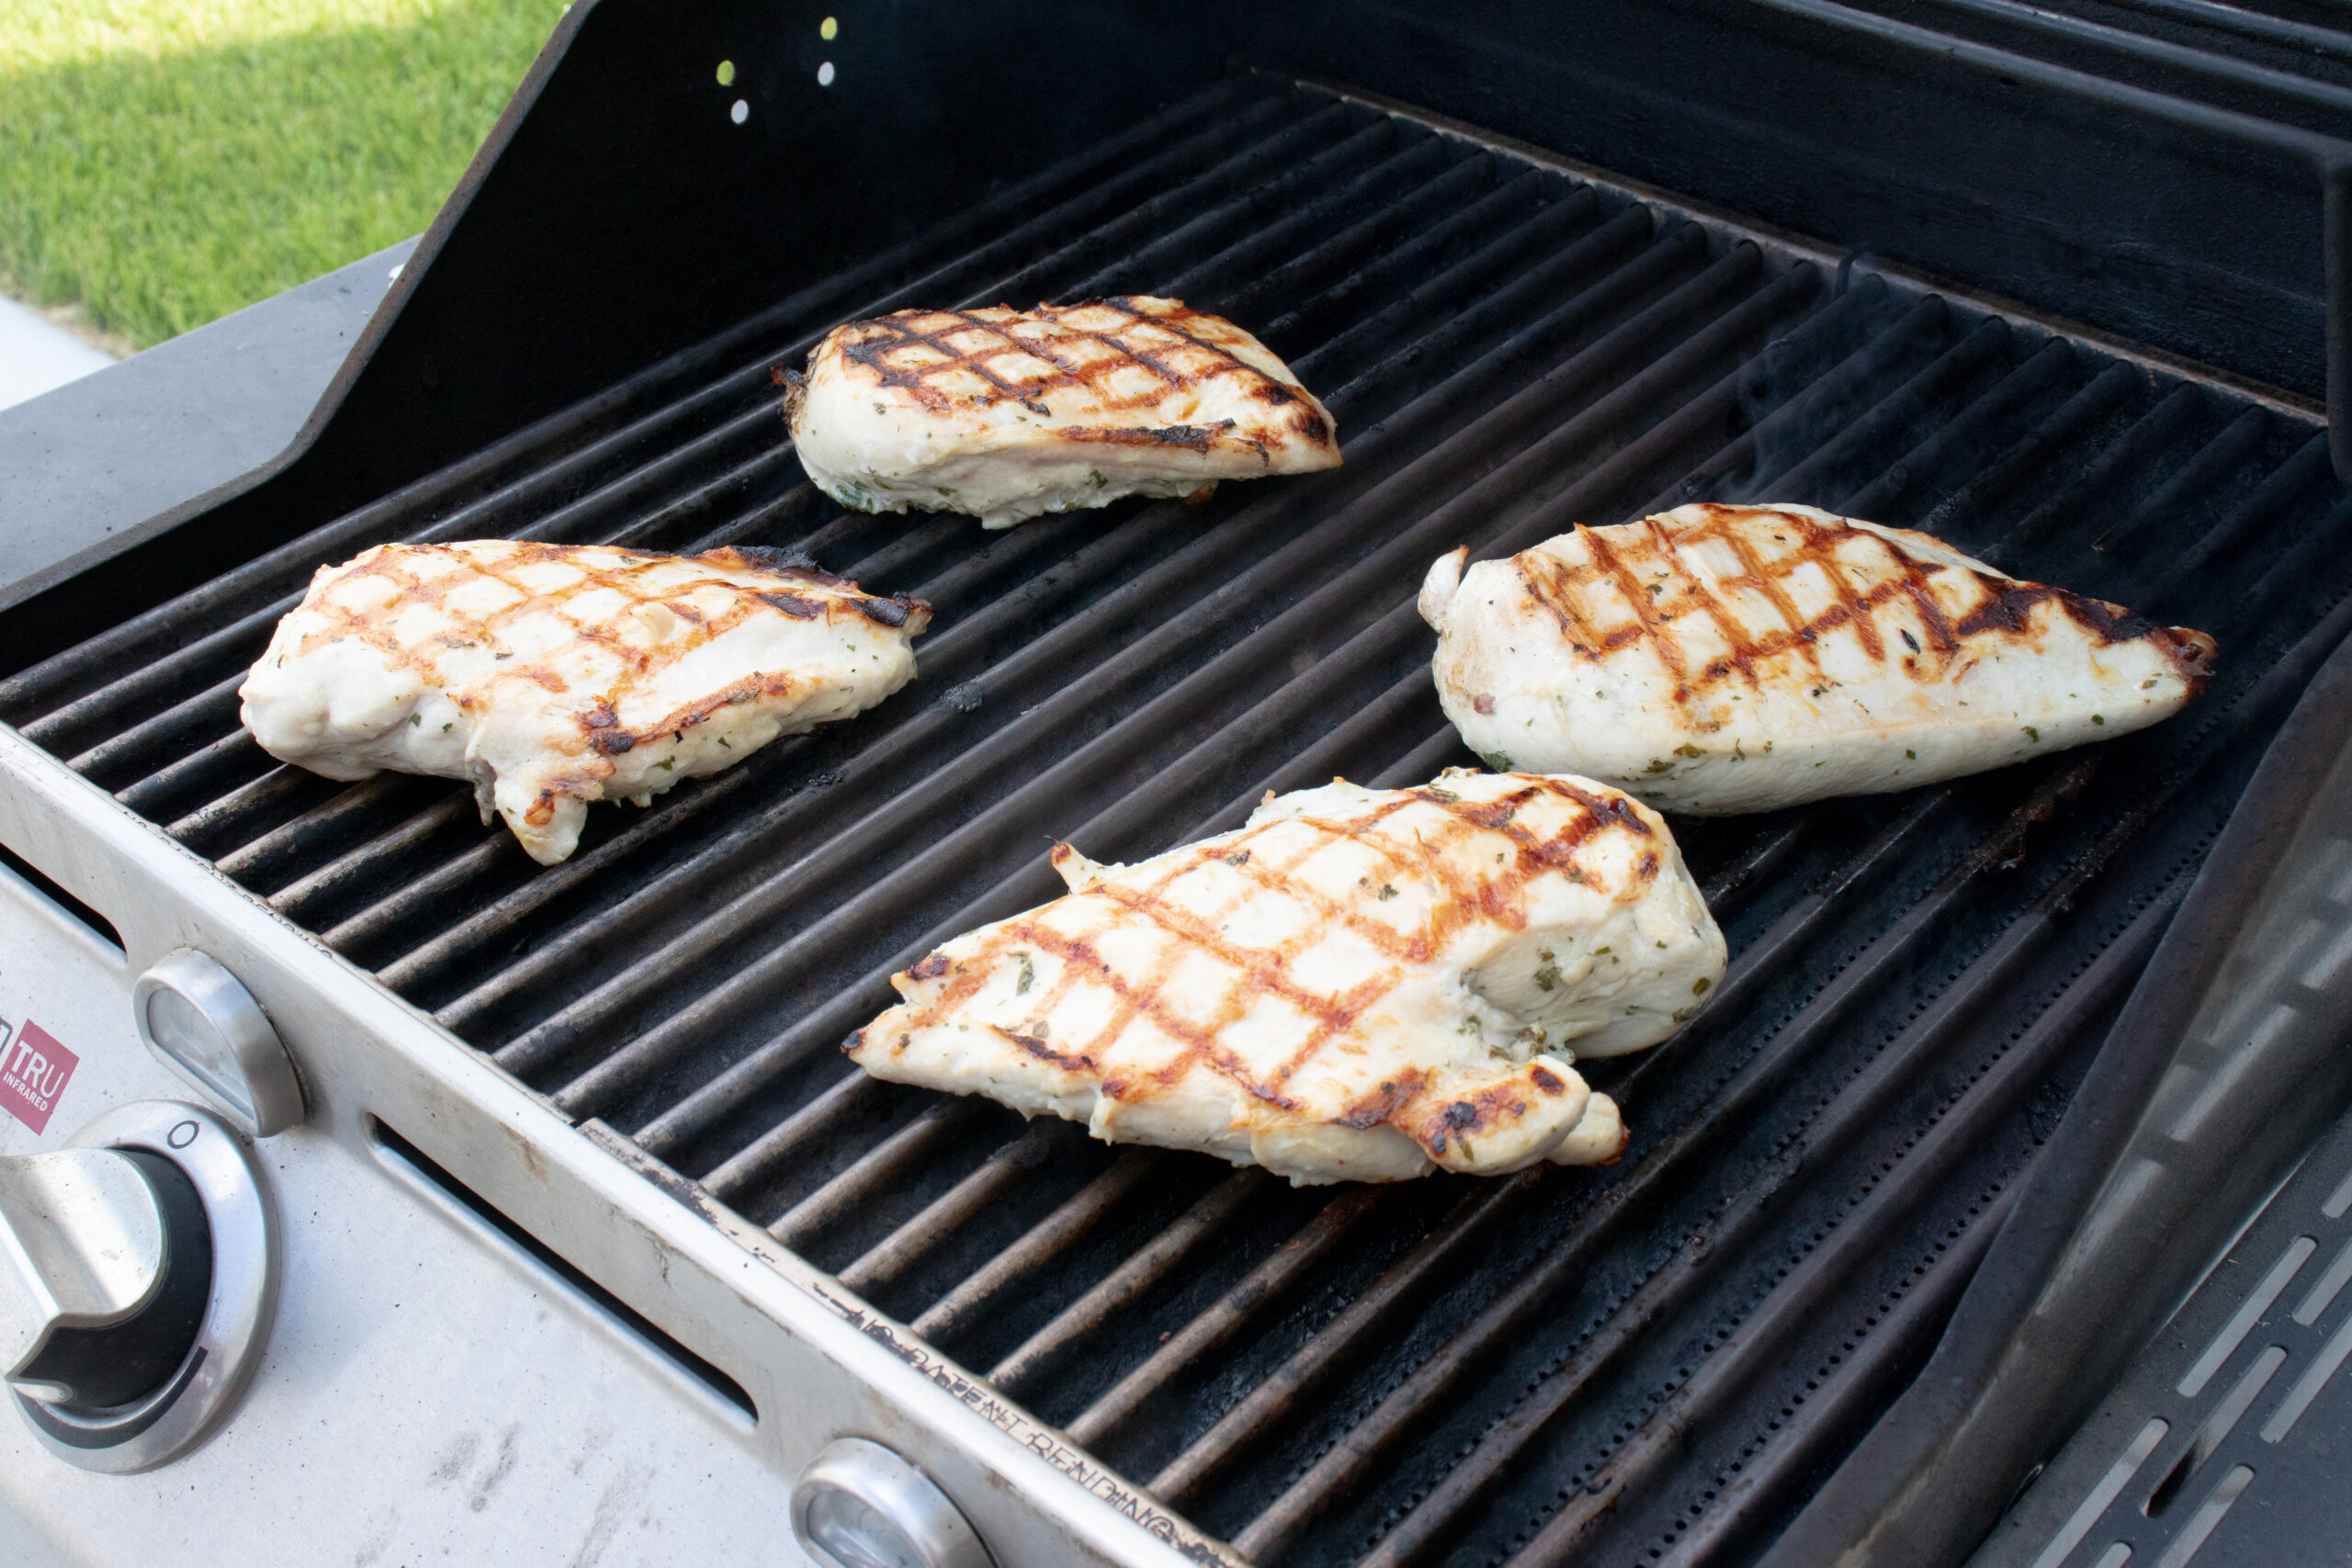 A grill with 4 grilled pieces of chicken.